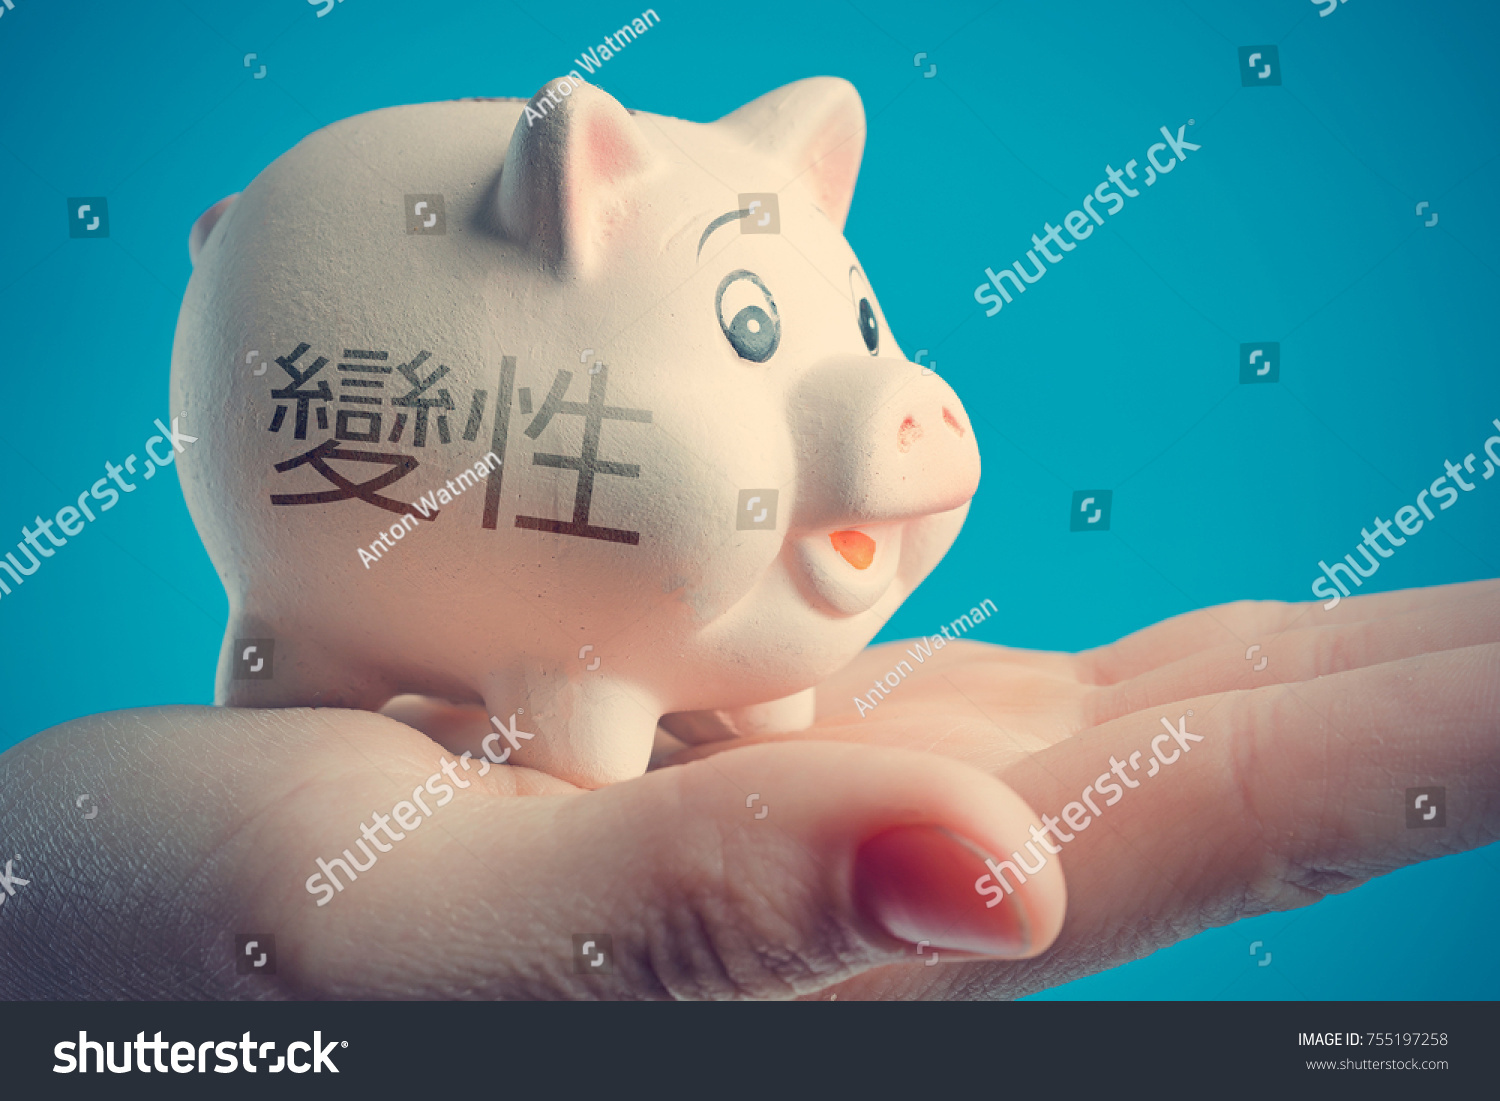 Help me come up with an inscription for a piggy bank